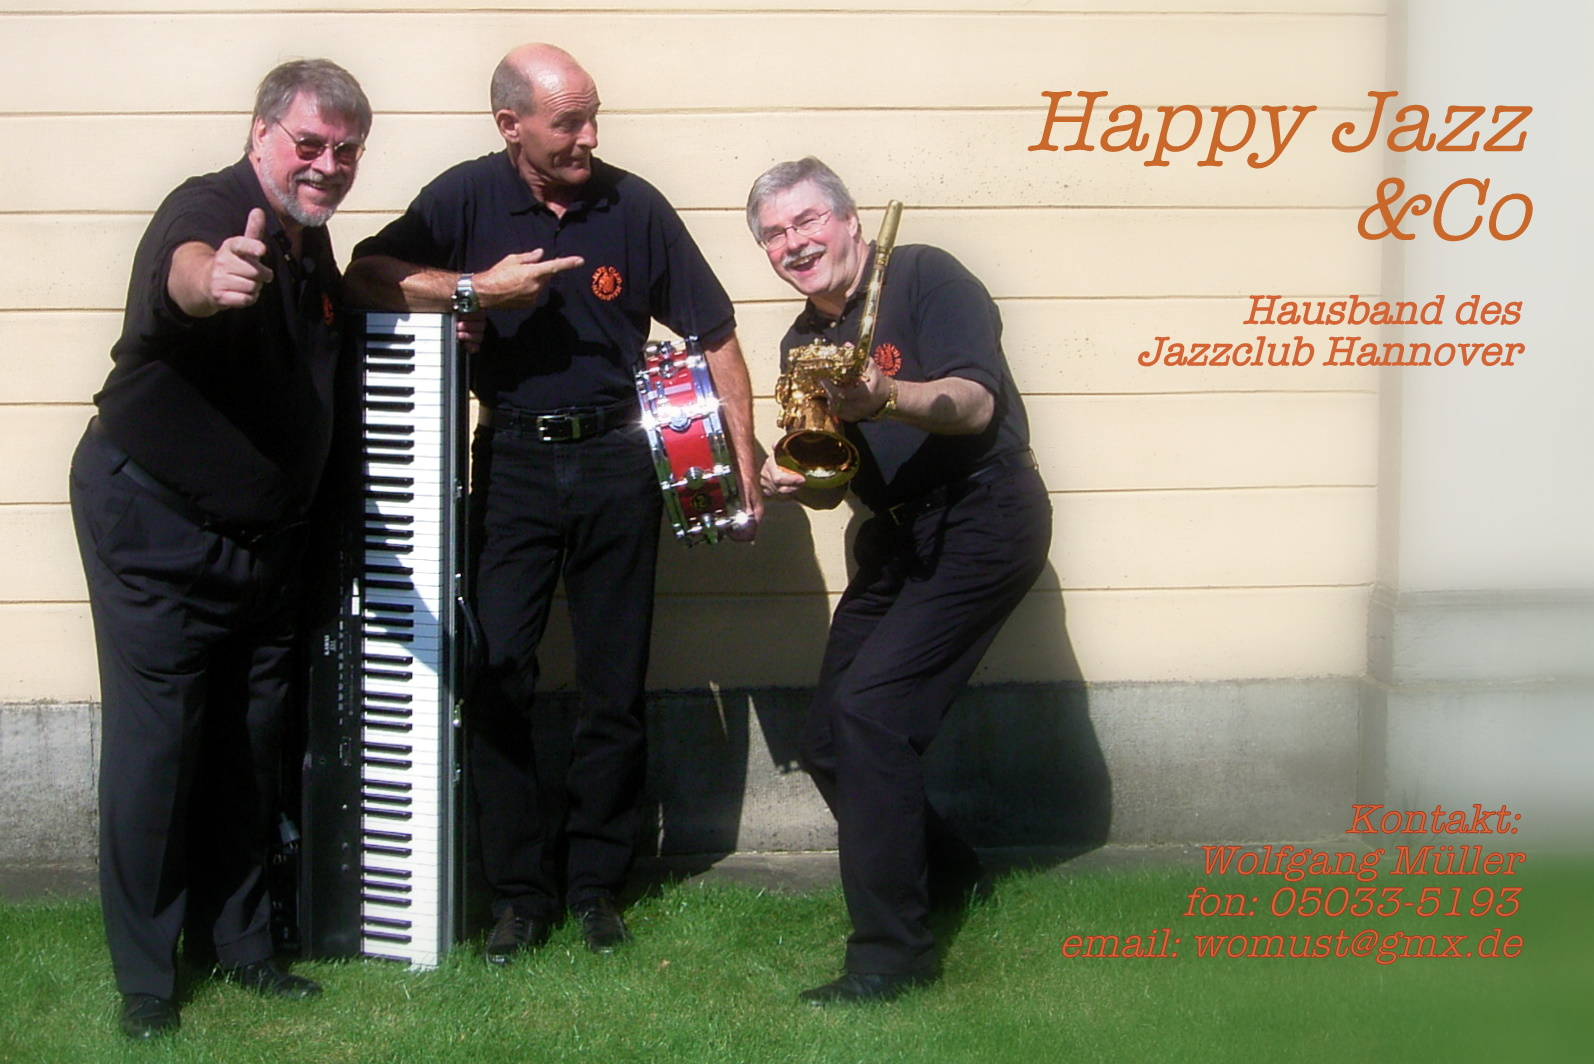 Happy Jazz & CO.